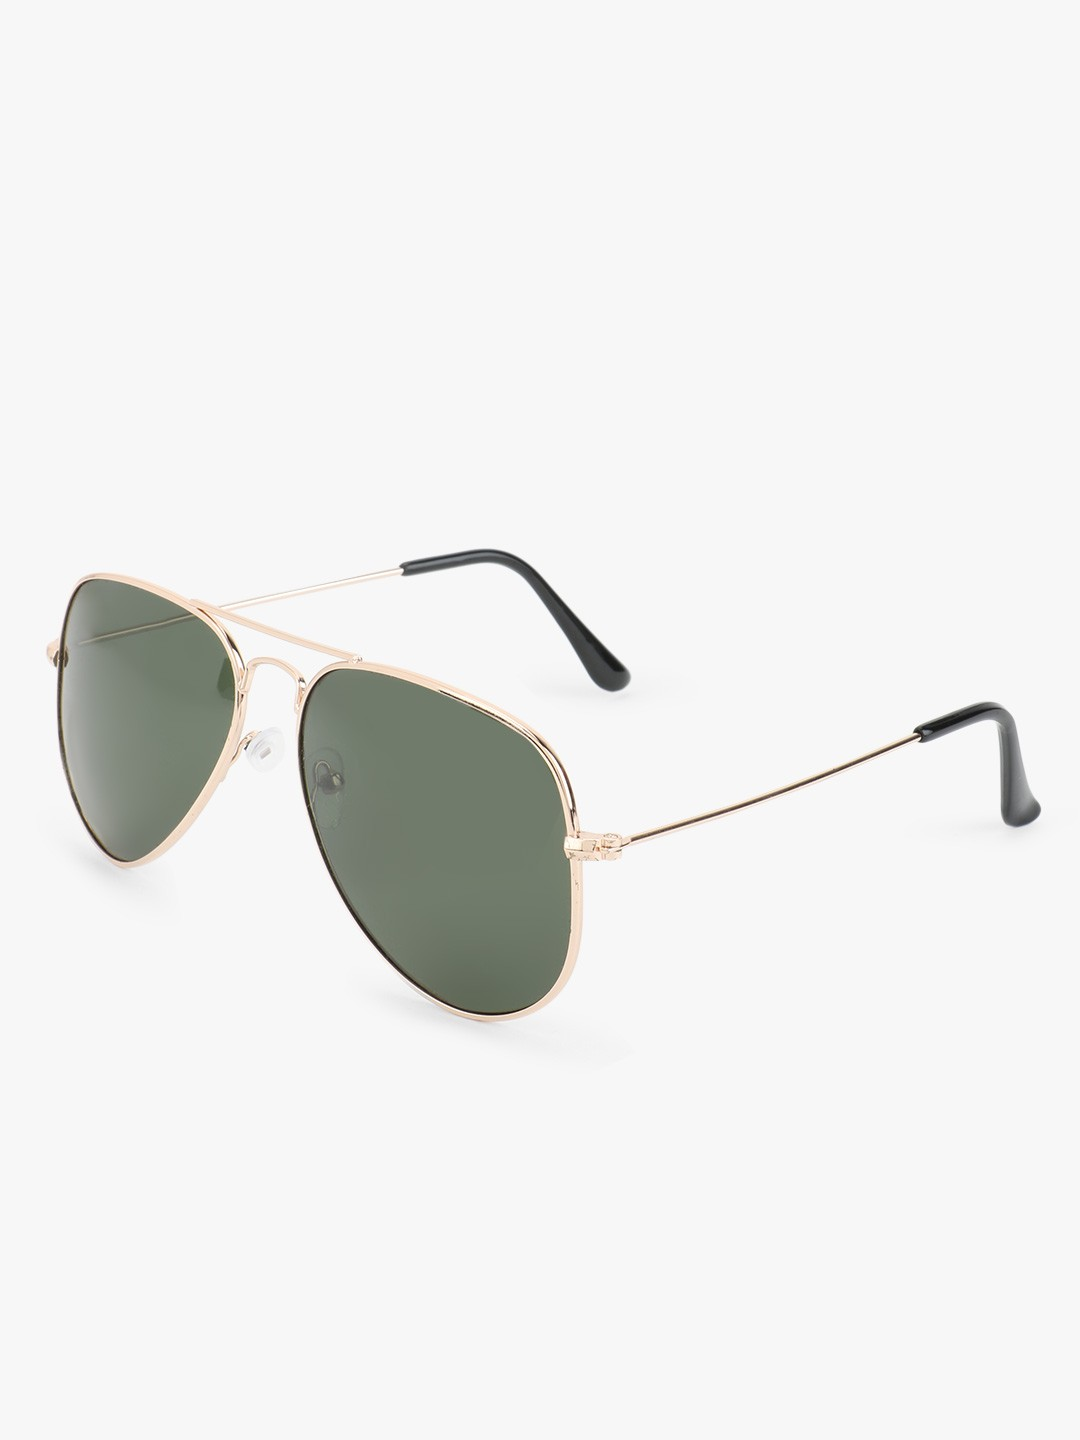 Kindred Green Polorized Pilot Sunglasses 1